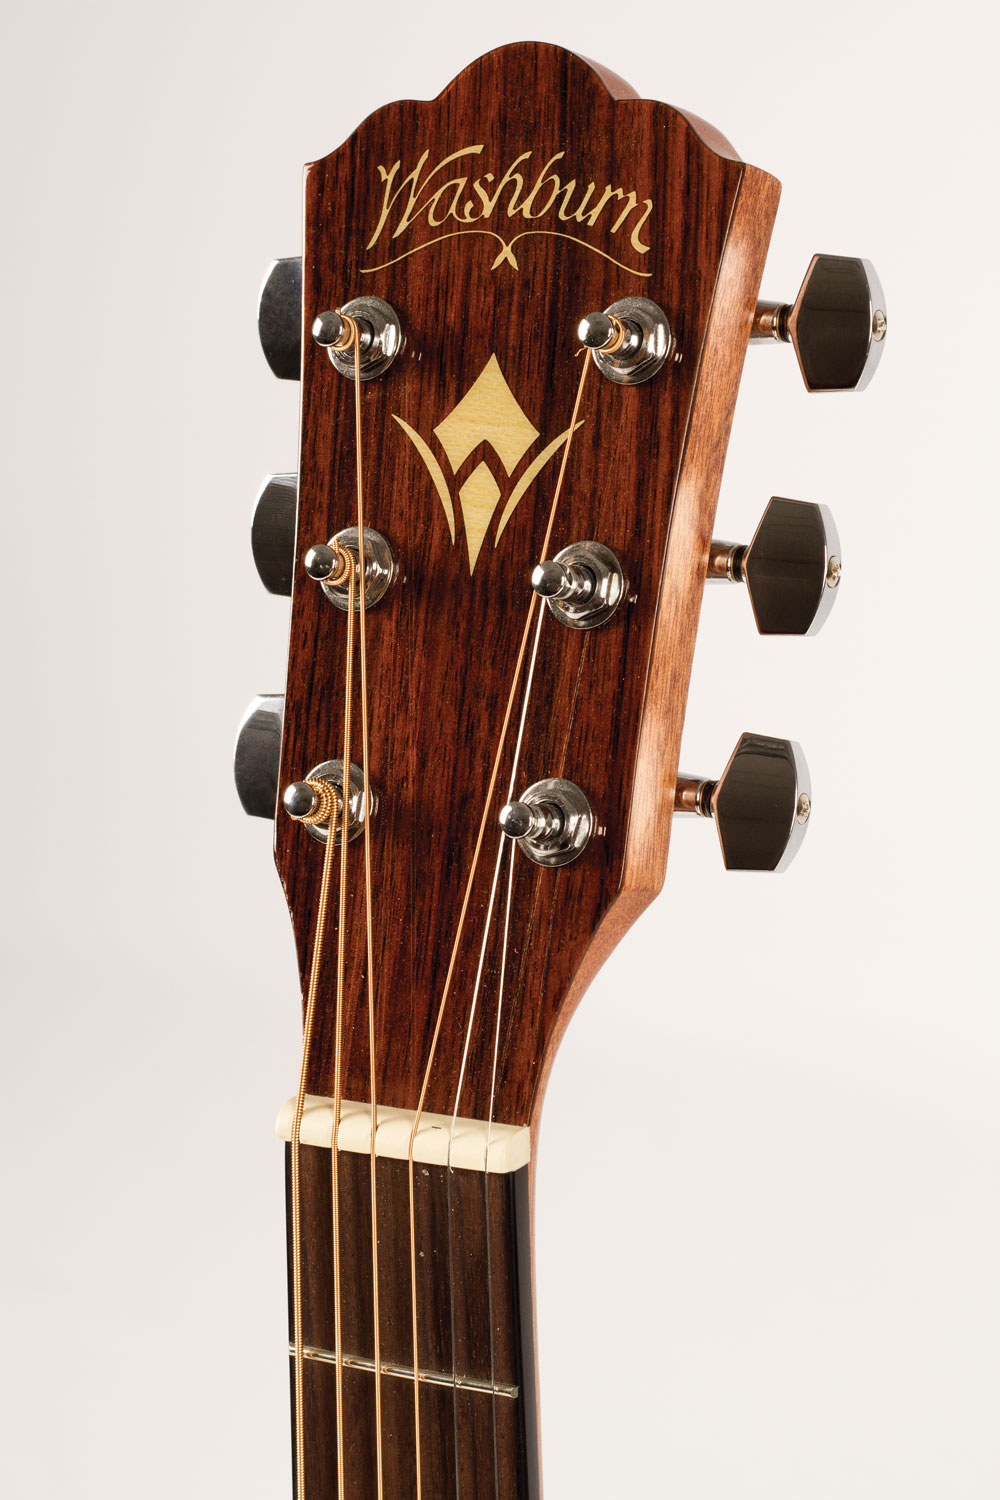 AG283_Washburn-headstock